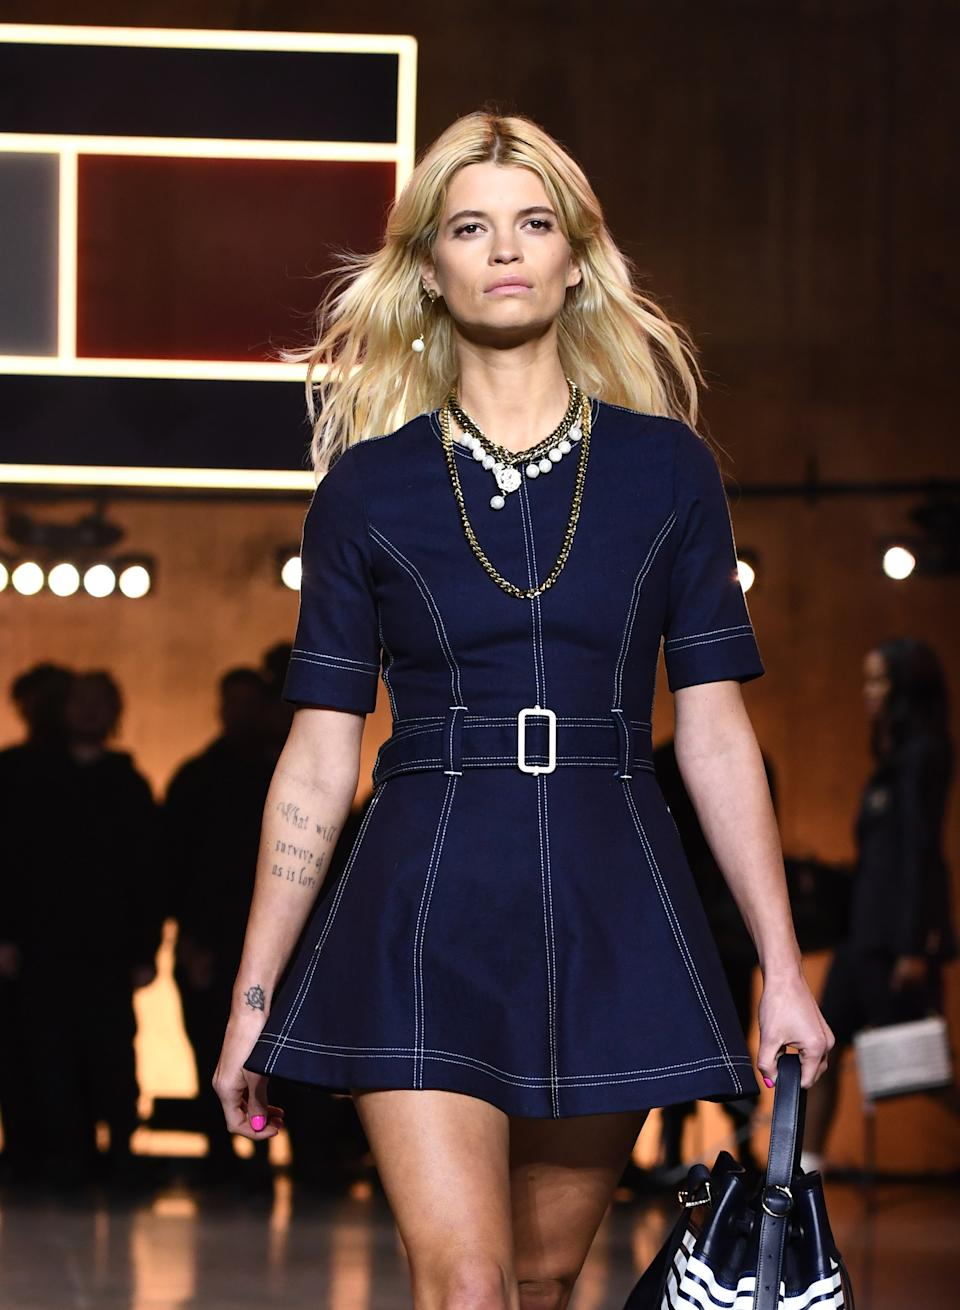 Pixie Geldof walks the runway at the Tommy Hilfiger show during London Fashion Week. (Getty Images)